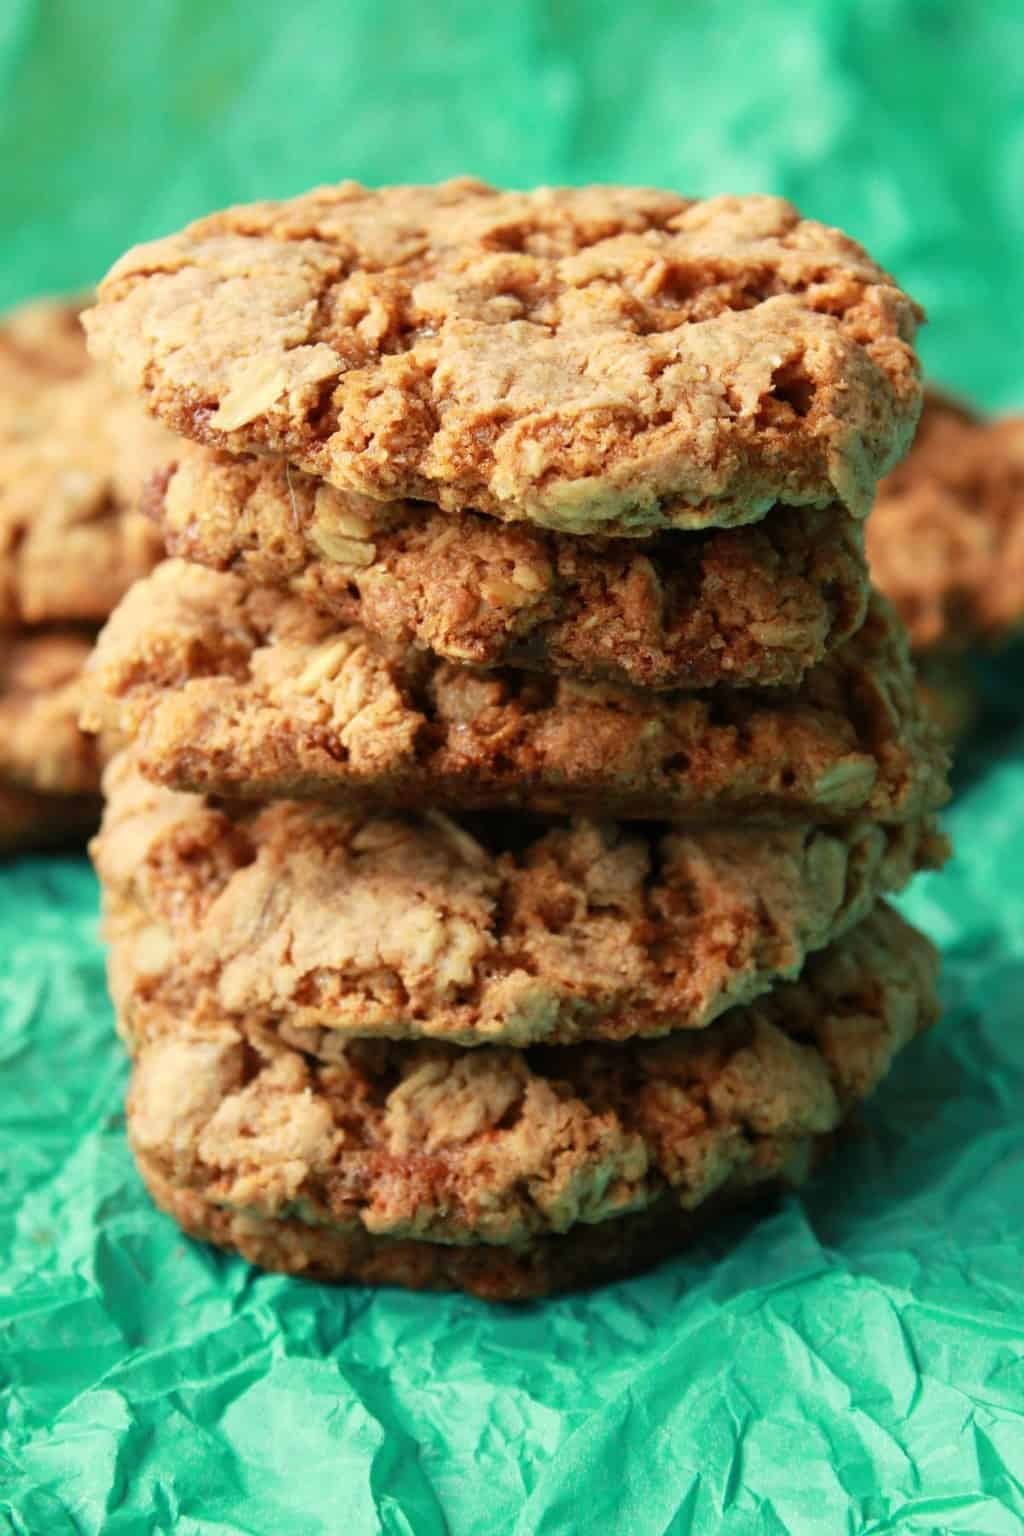 Vegan oatmeal cookies stacked up against a green background.